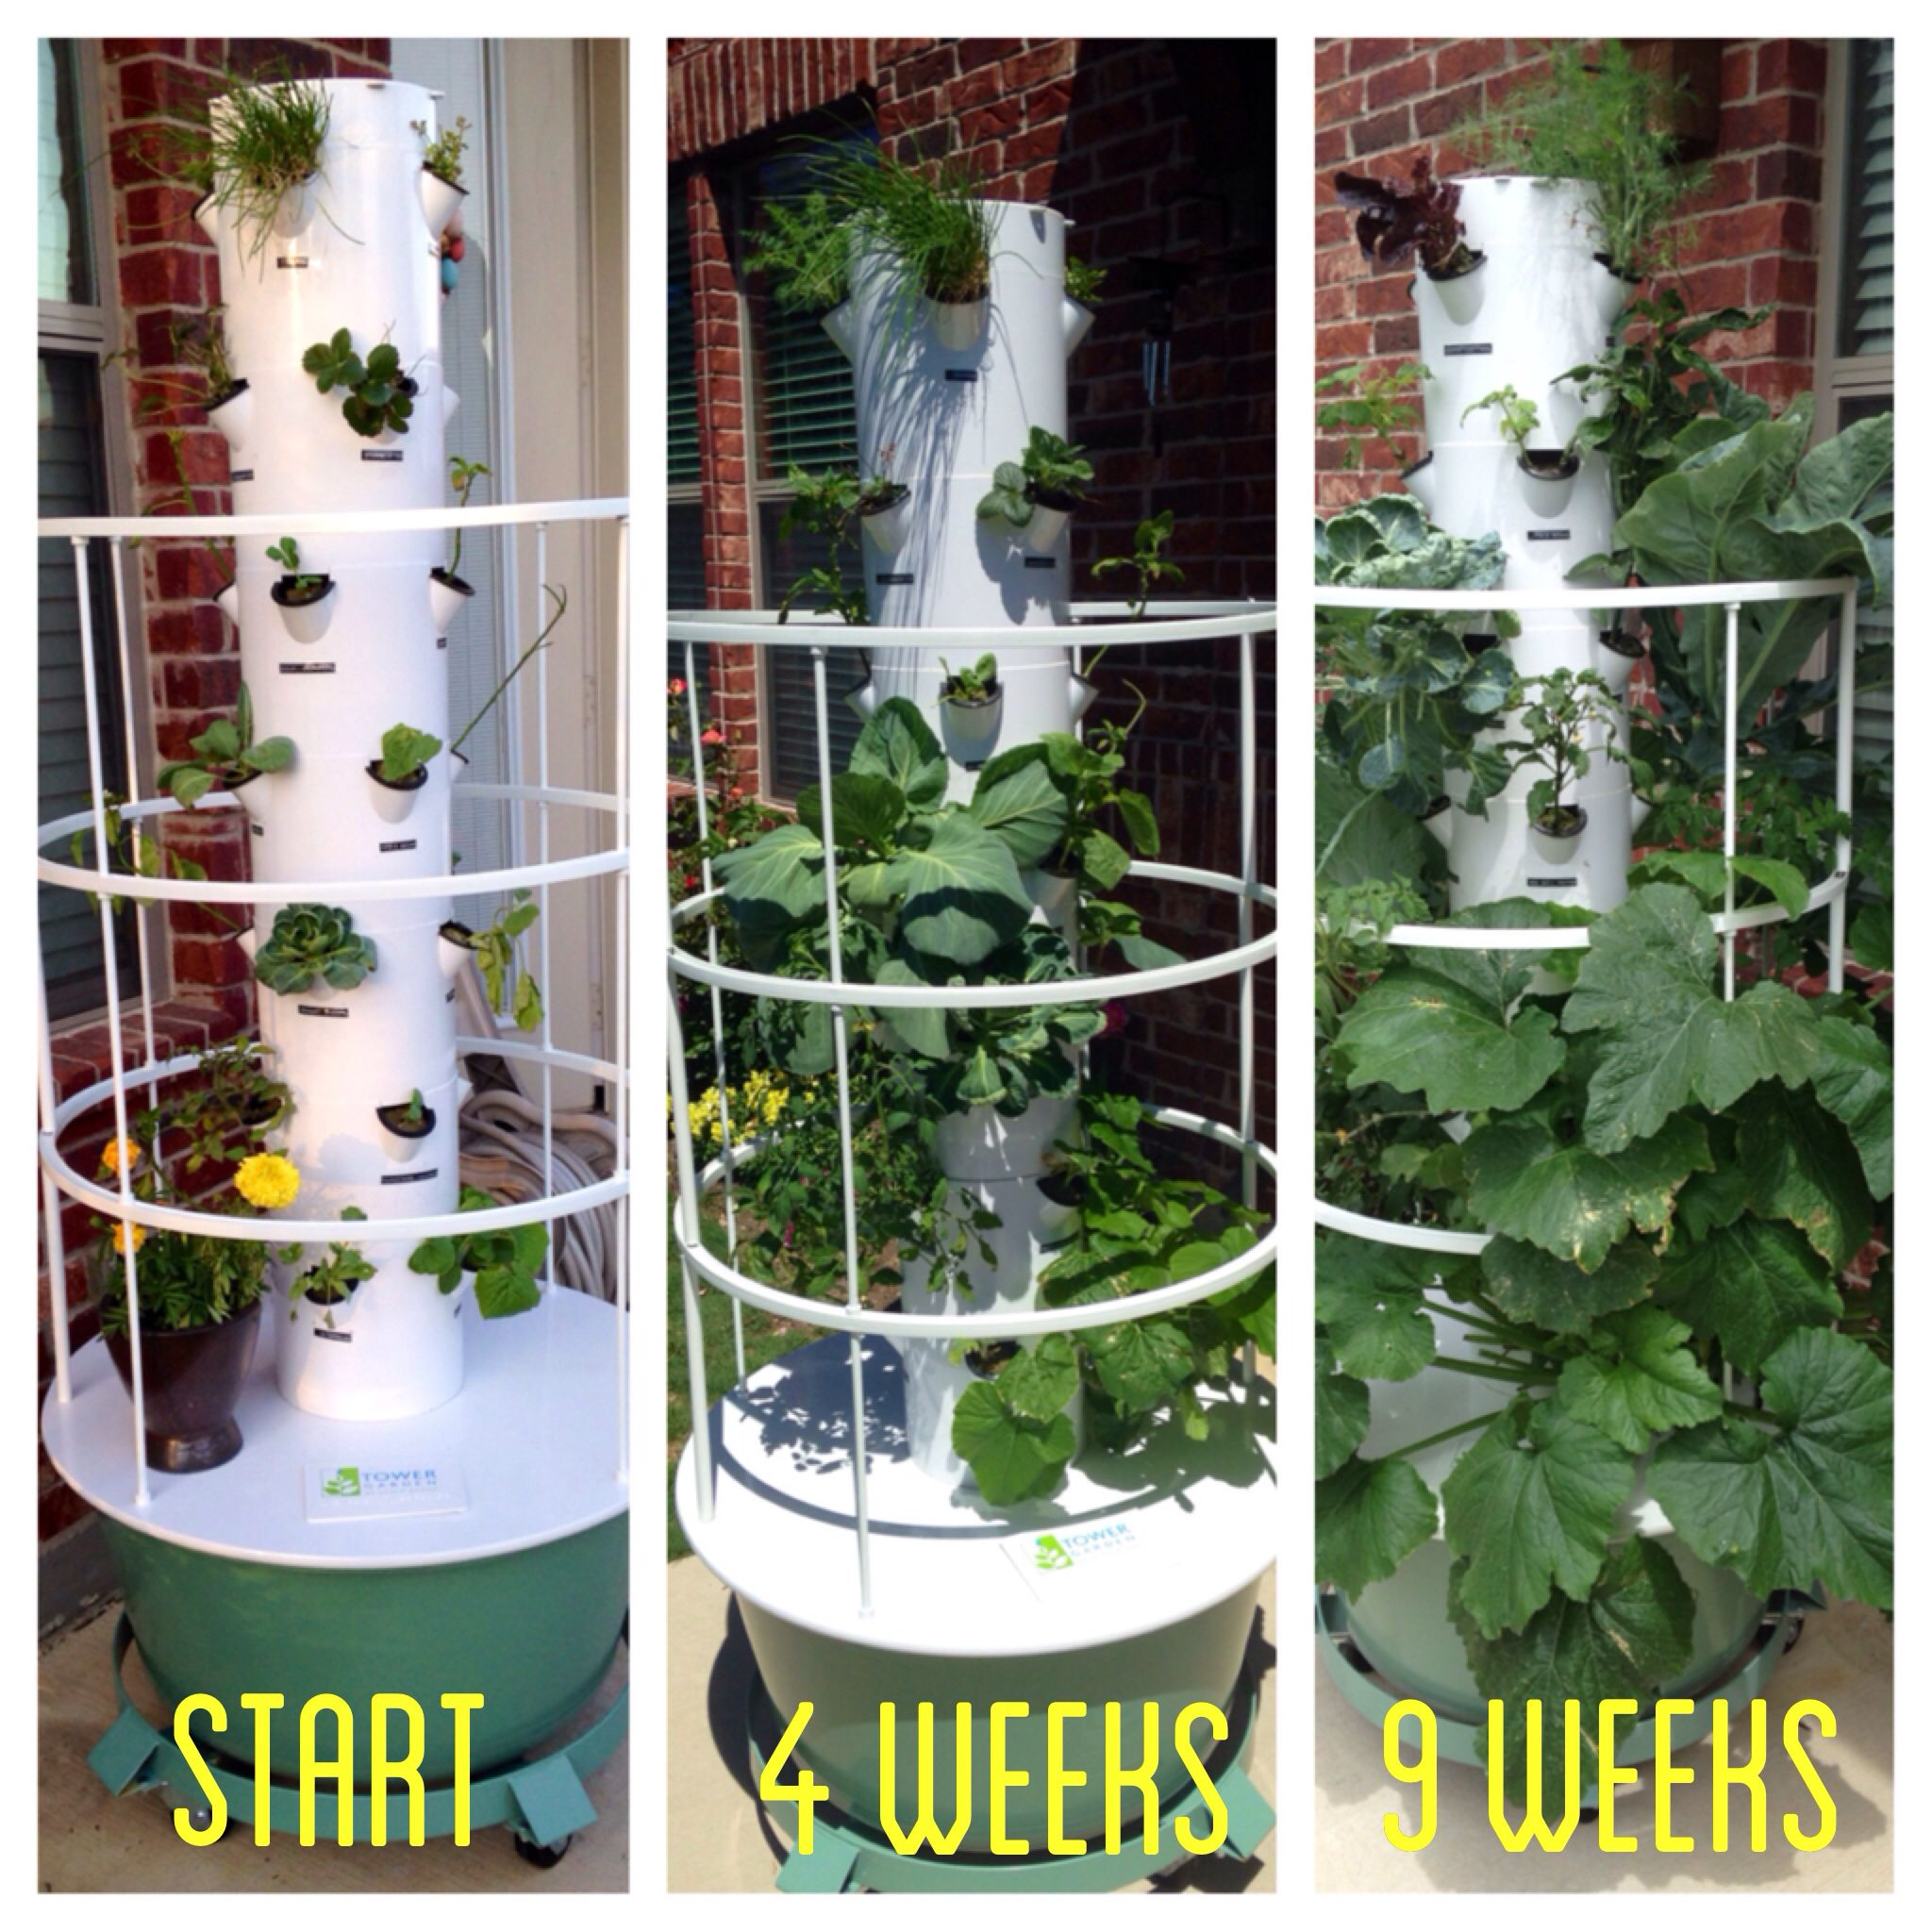 Pin On Juice Plus And Tower Garden